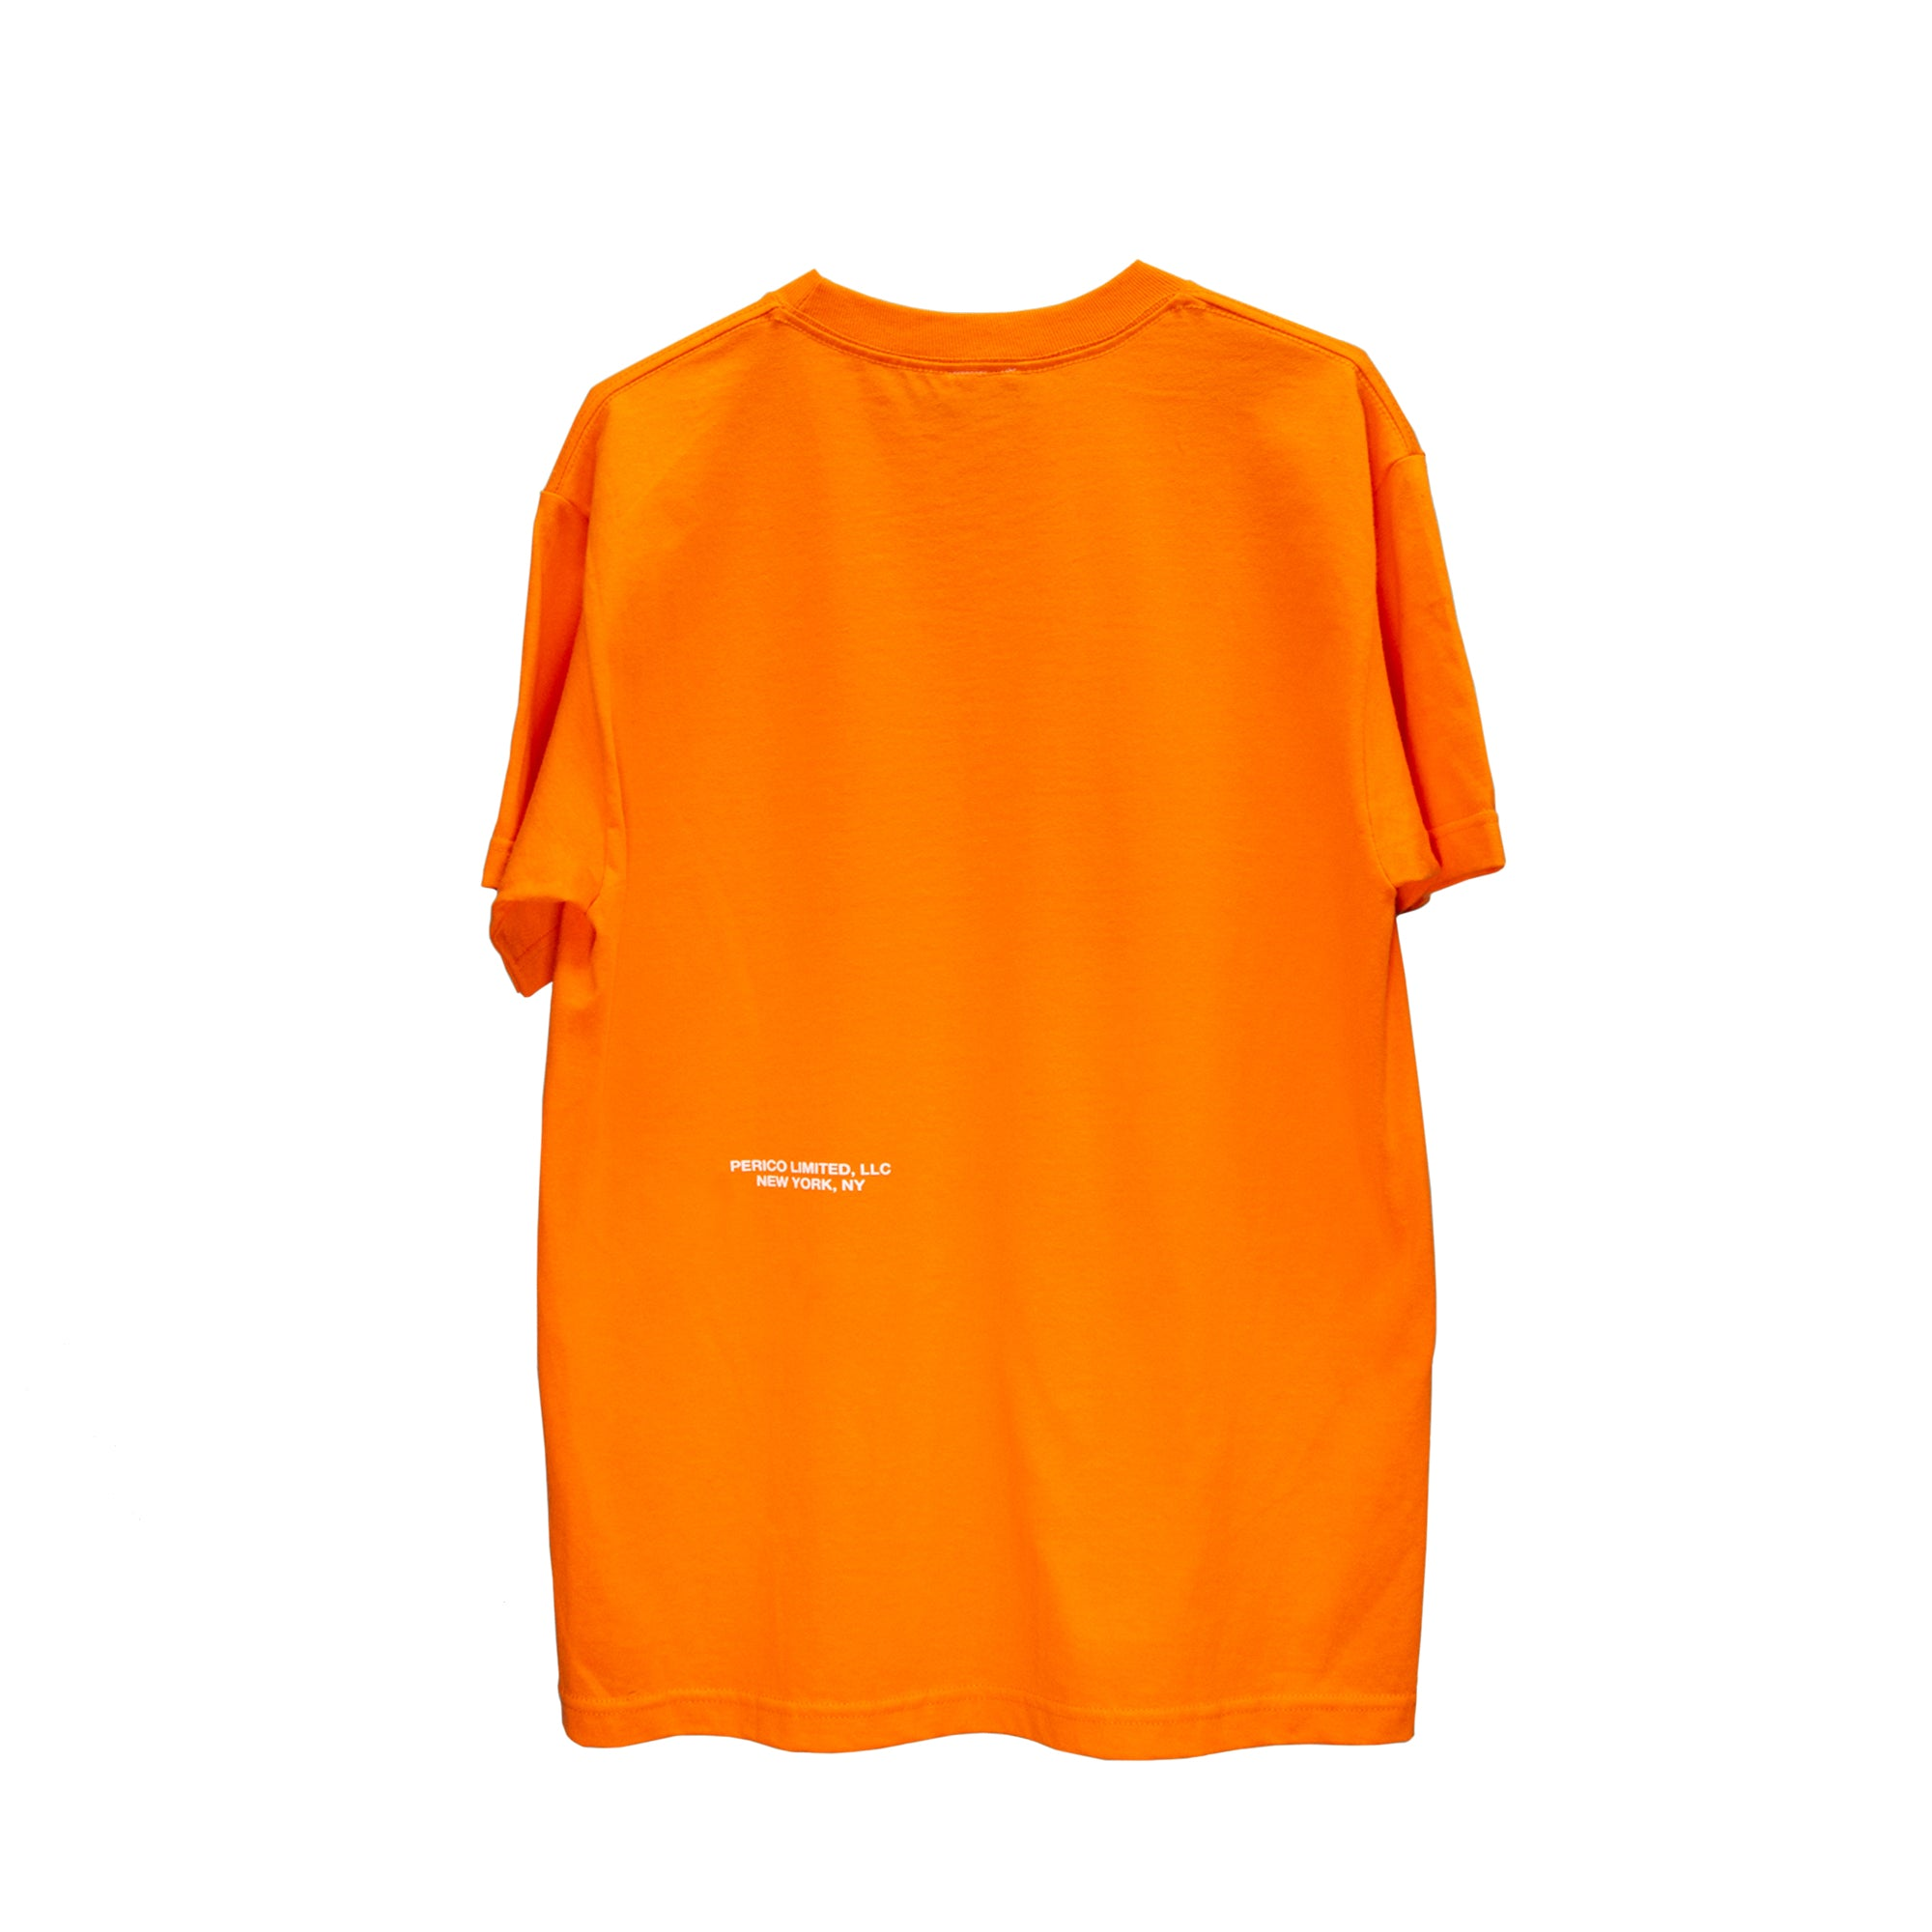 Yerrrr - Knicks Orange S/S